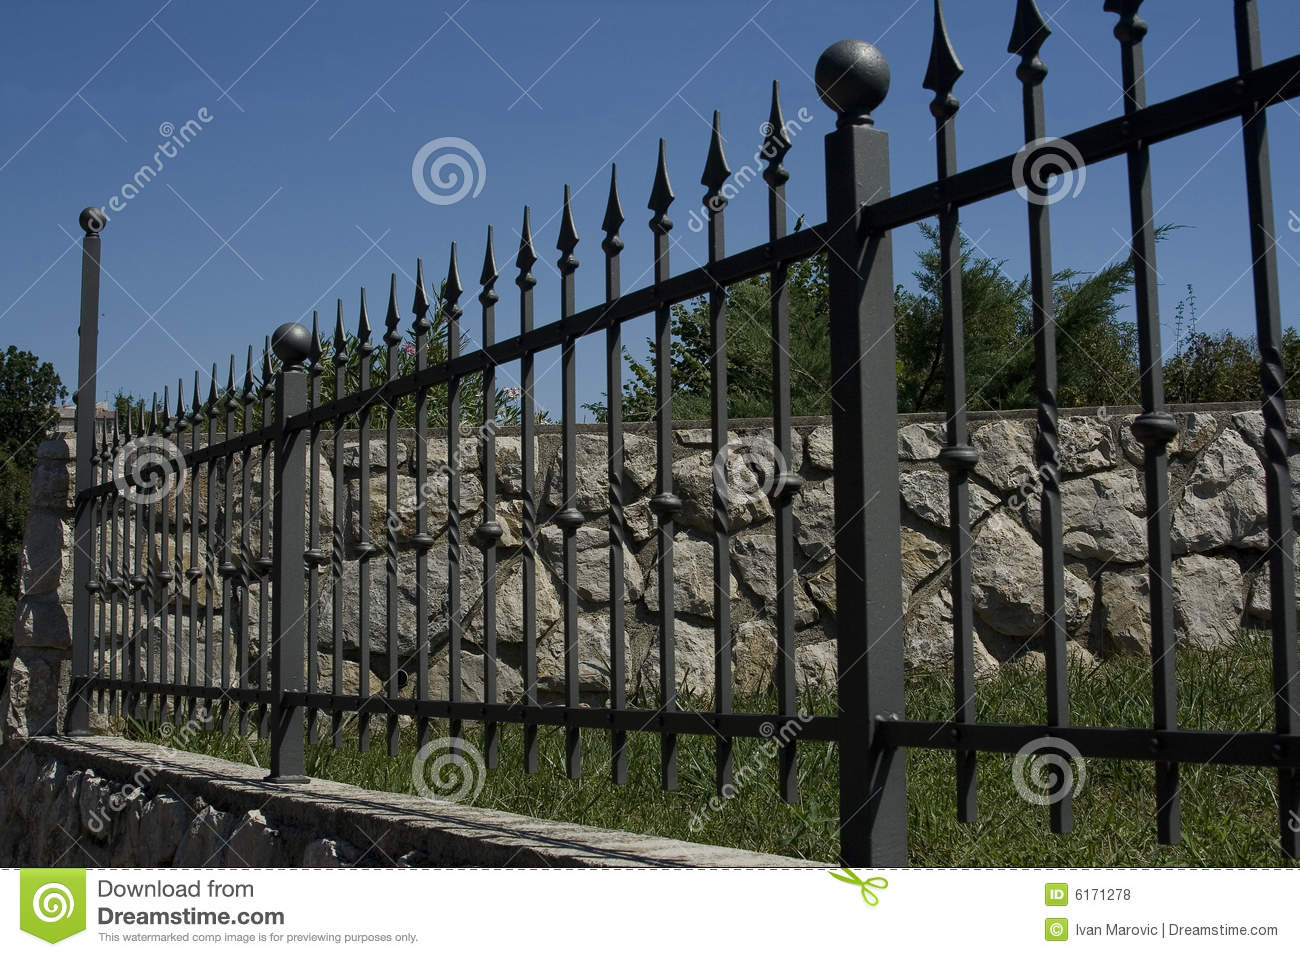 Wrought Iron Fence Royalty Free Stock Photos - Image: 6171278